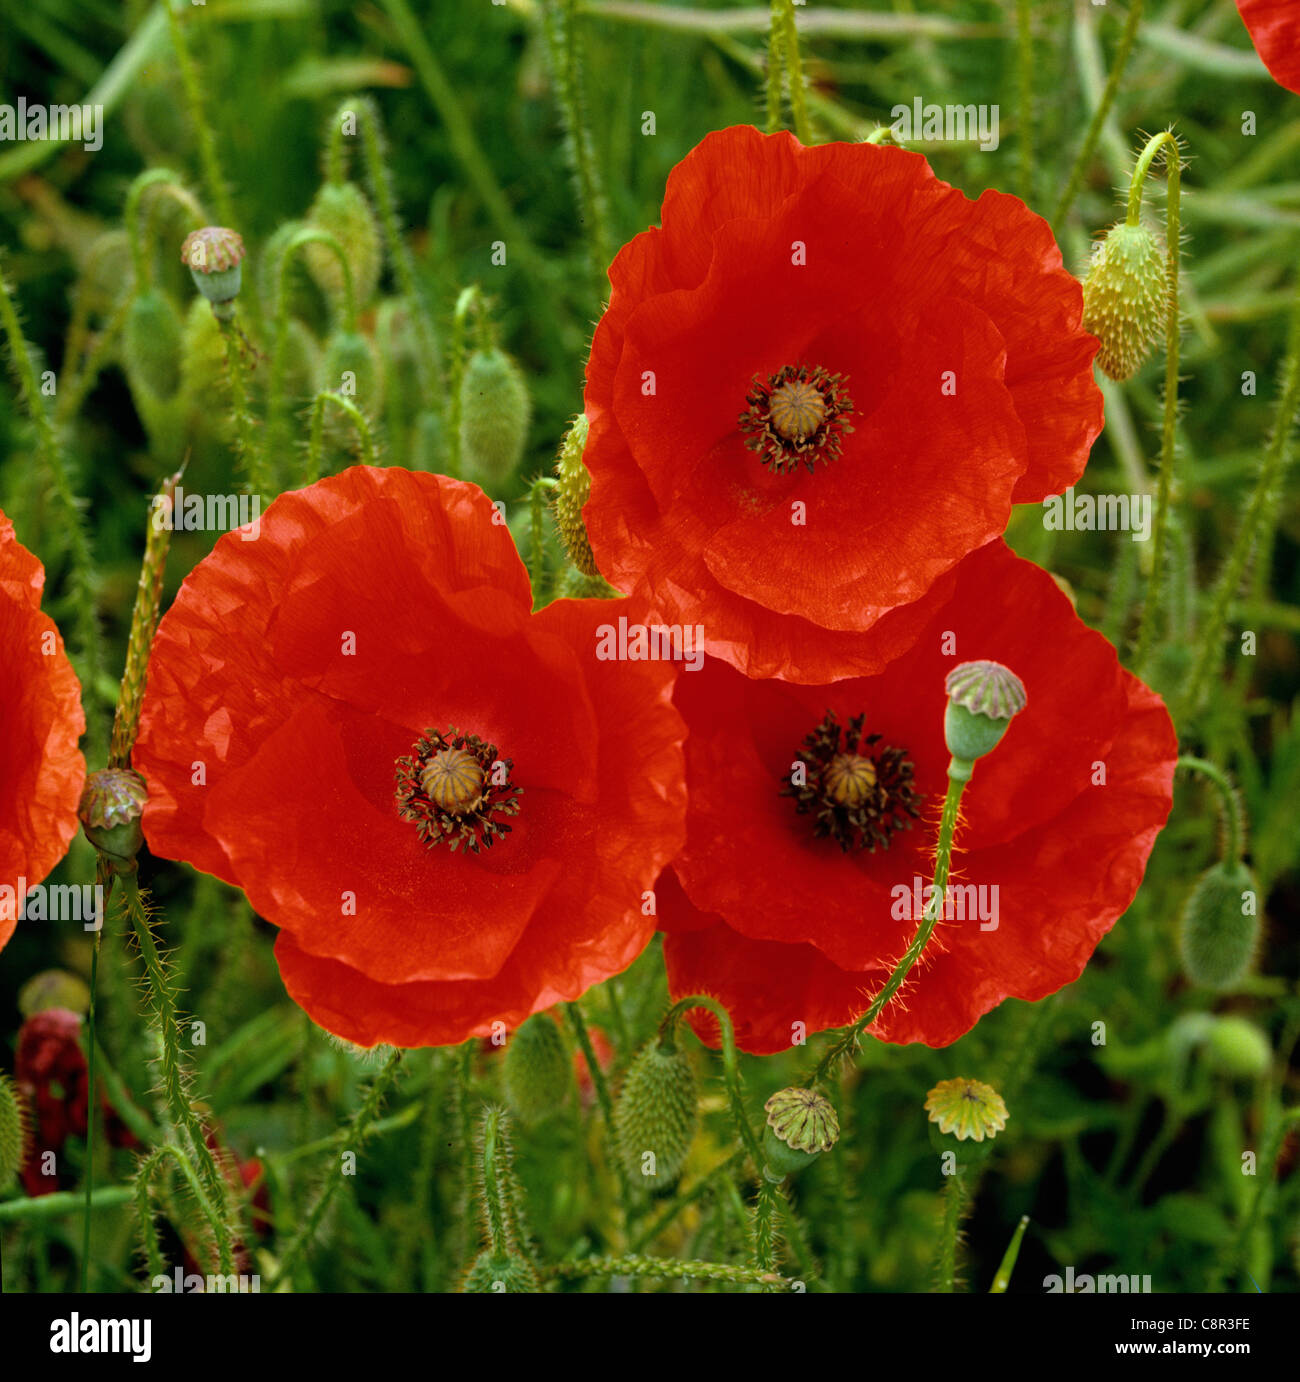 Corn poppy (Papaver rhoeas) flowers - Stock Image